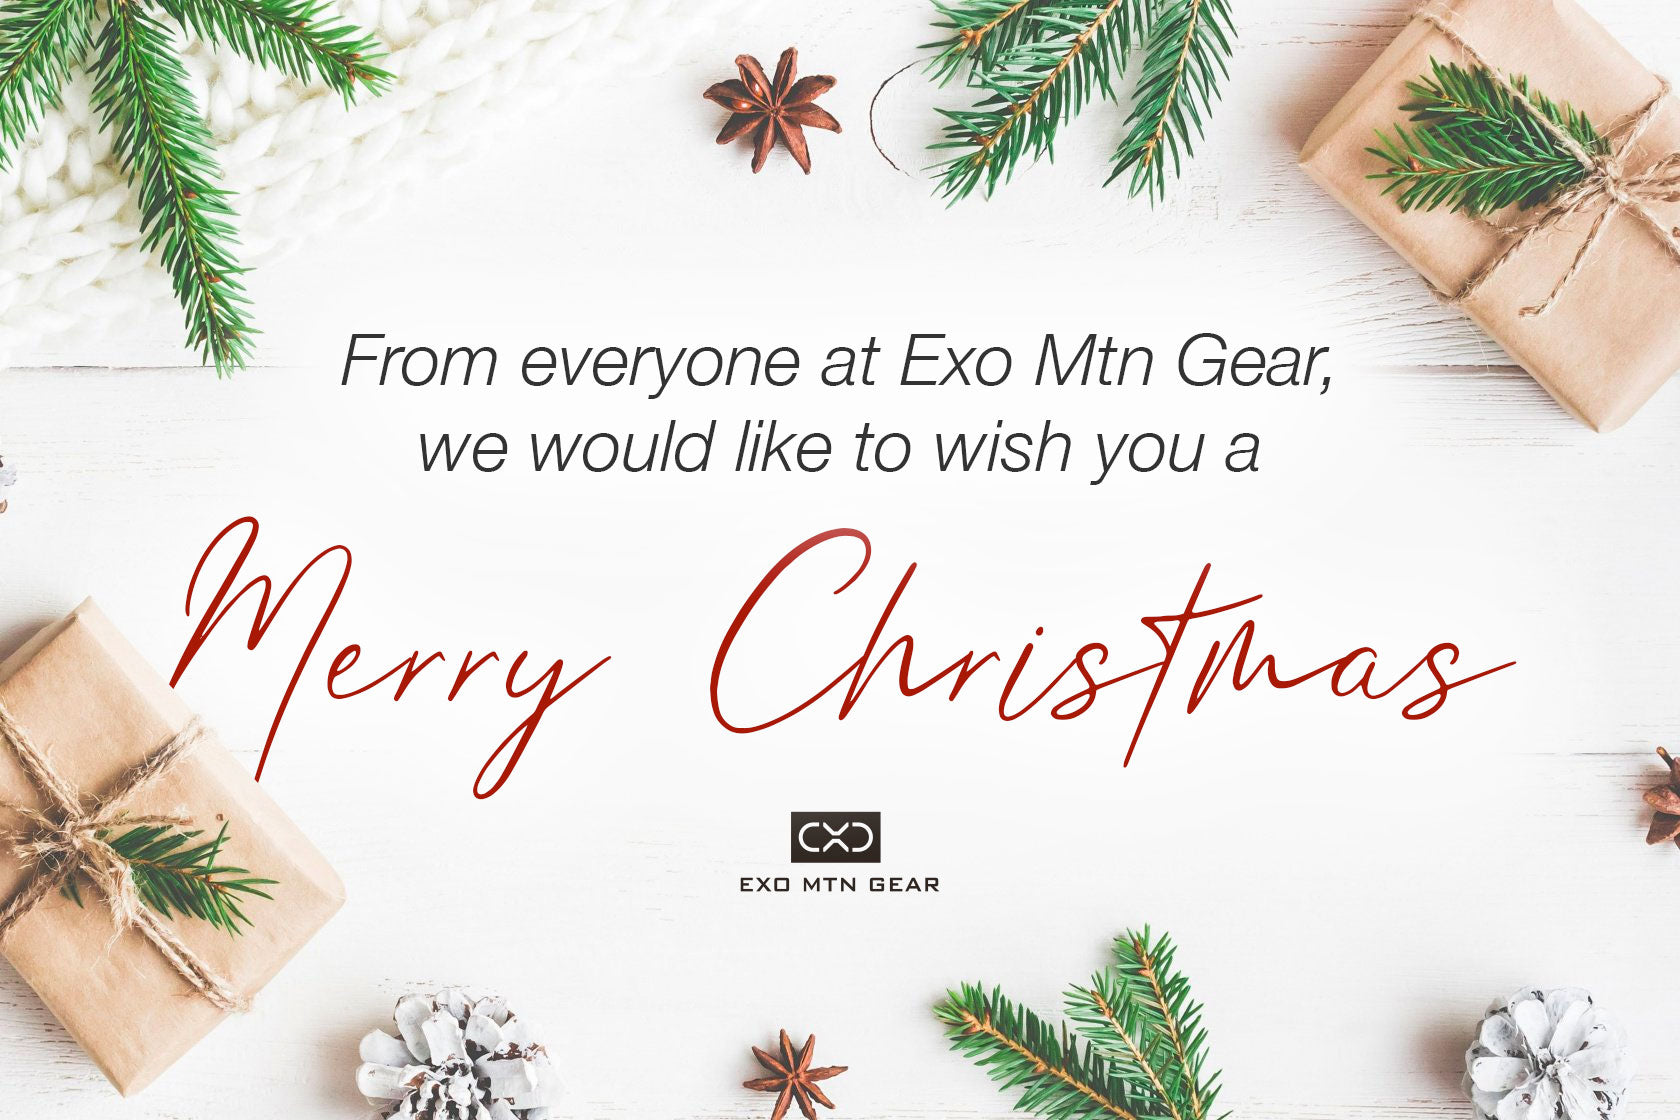 Merry Christmas from Exo Mtn Gear